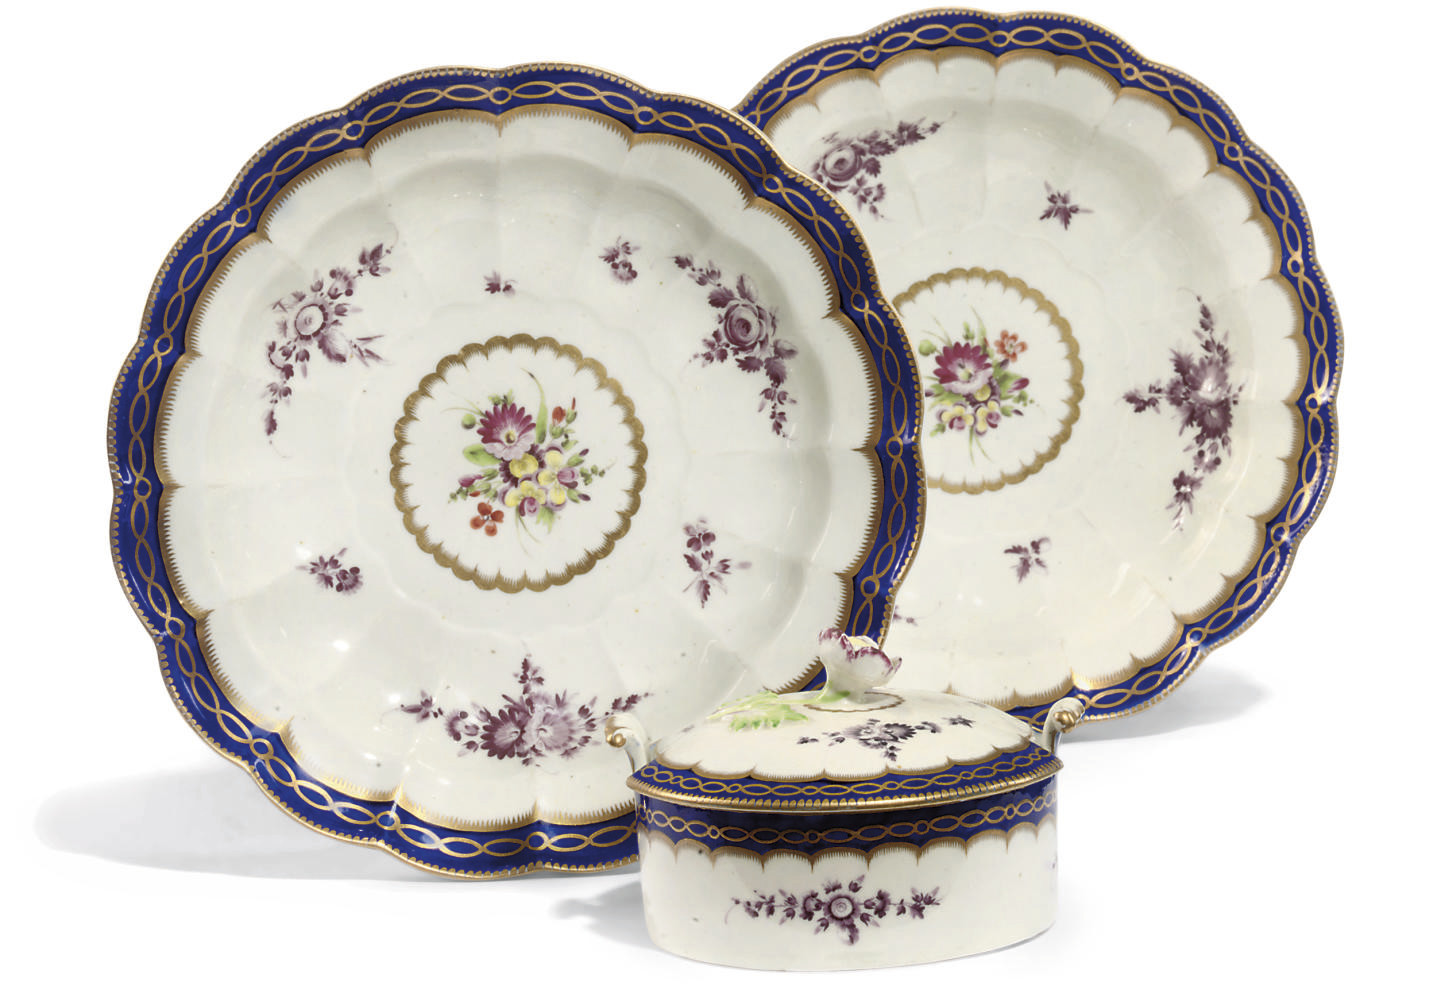 A WORCESTER TWO-HANDLED CYLINDRICAL BUTTER-TUB AND COVER AND TWO FLUTED DISHES